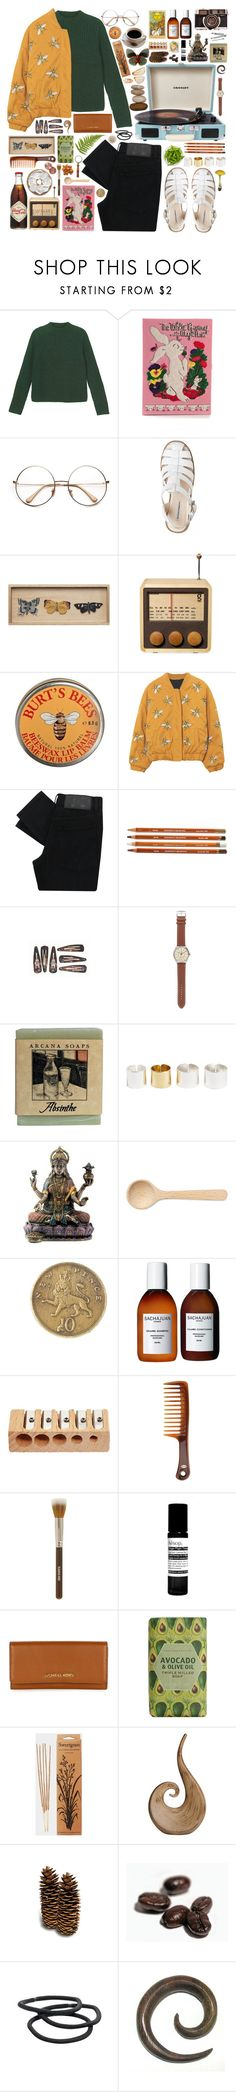 """""""Gold Link"""" by peachy-mami ❤ liked on Polyvore featuring Monki, Olympia Le-Tan, WALL, Singgih Kartono, Burt's Bees, Crosley, Cheap Monday, J.Crew, Dries Van Noten and HAY"""